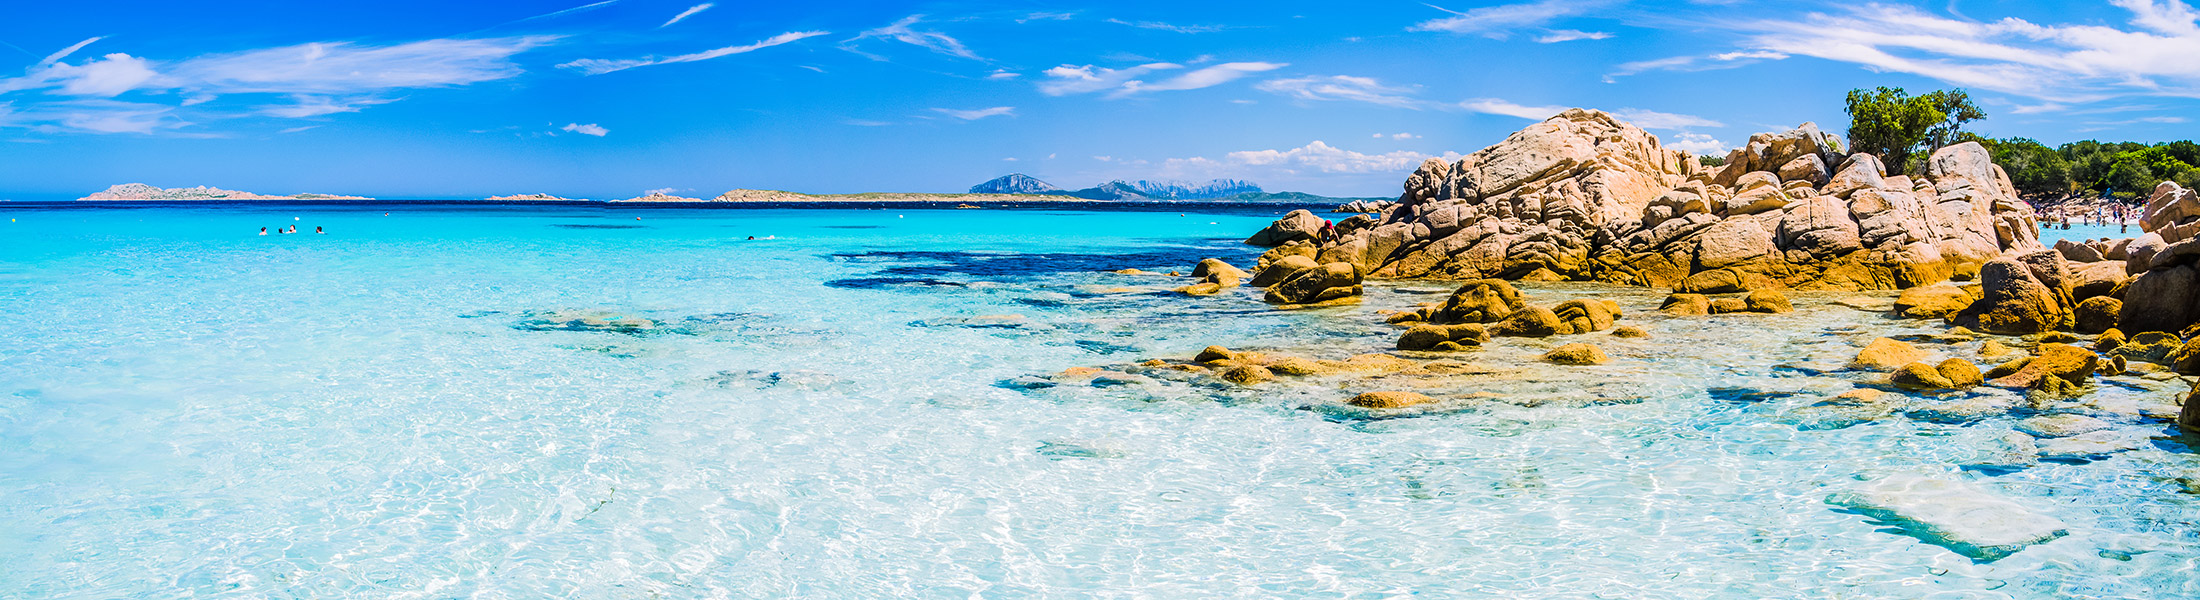 White beach, blue water and rocky coast in Sardinia Italy in Europe